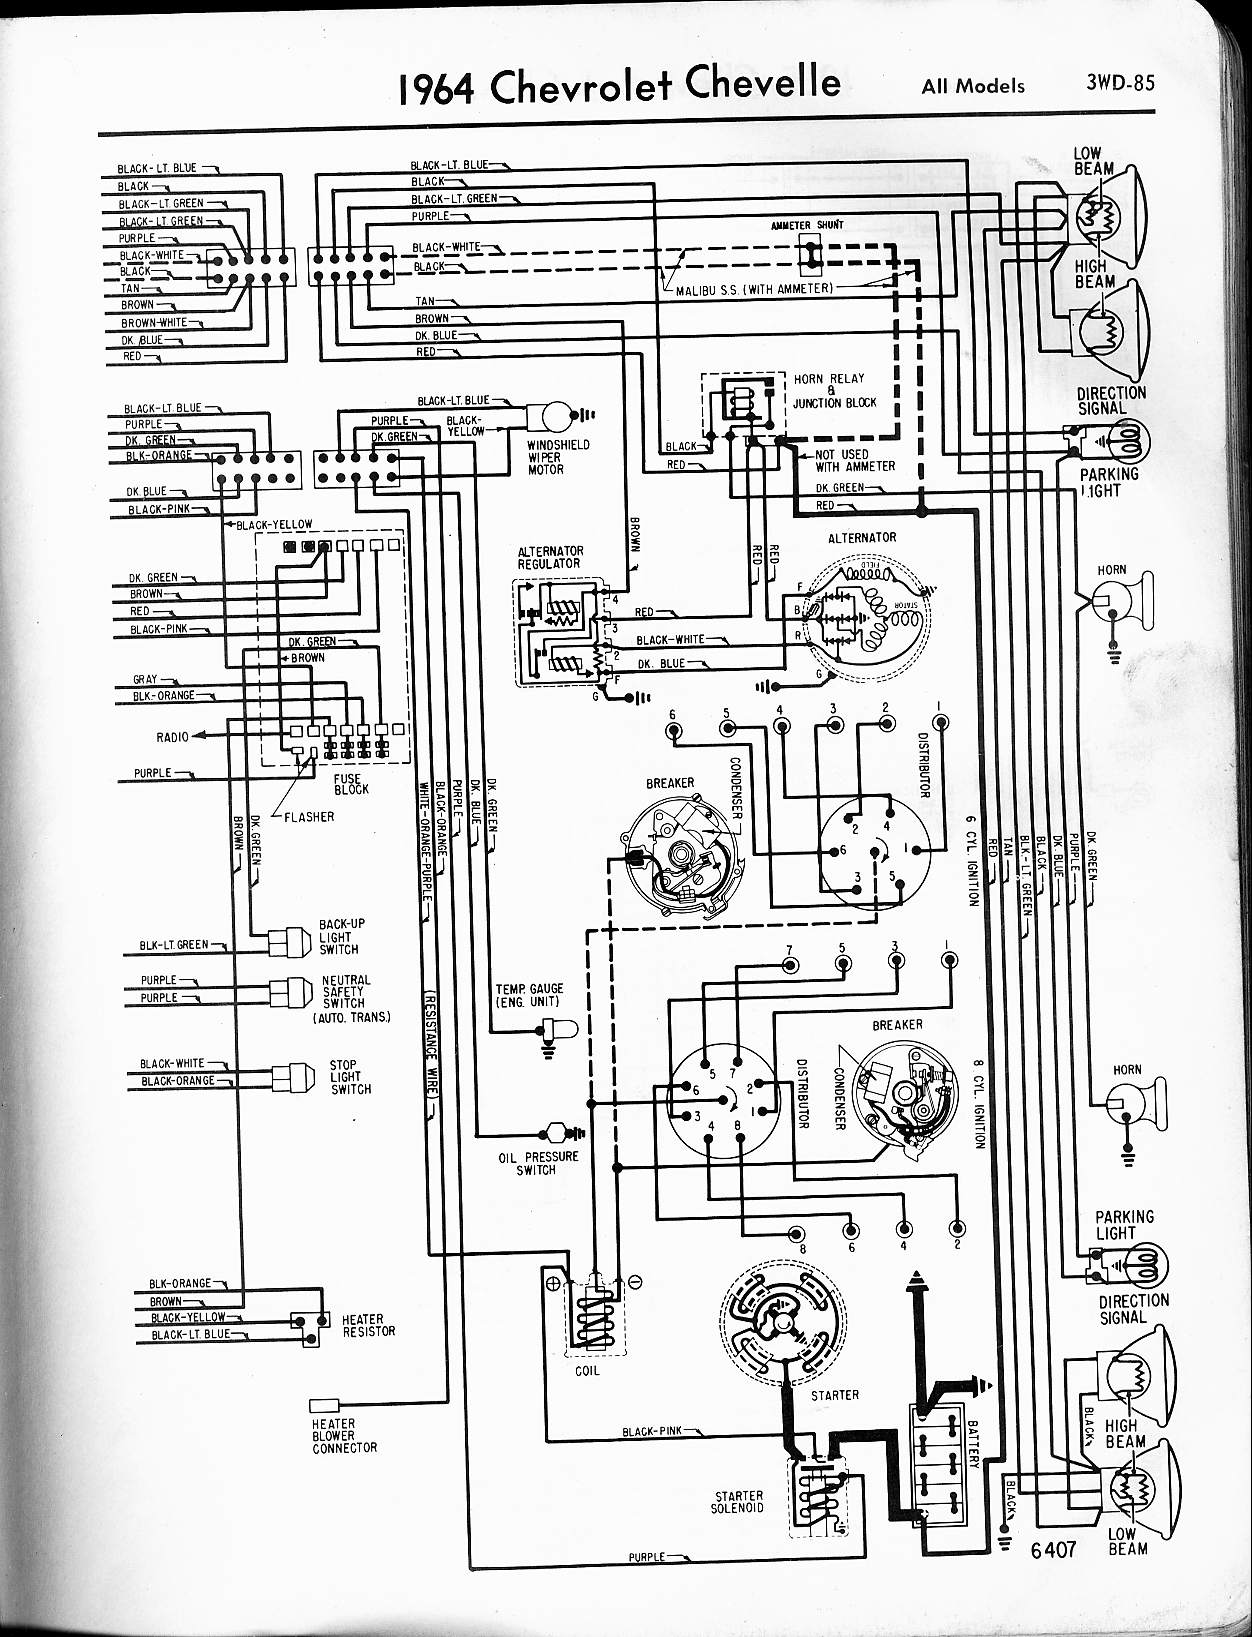 hight resolution of wrg 4232 1969 impala fuse box wiring diagram furthermore 1969 chevy impala for sale on 1966 chevy